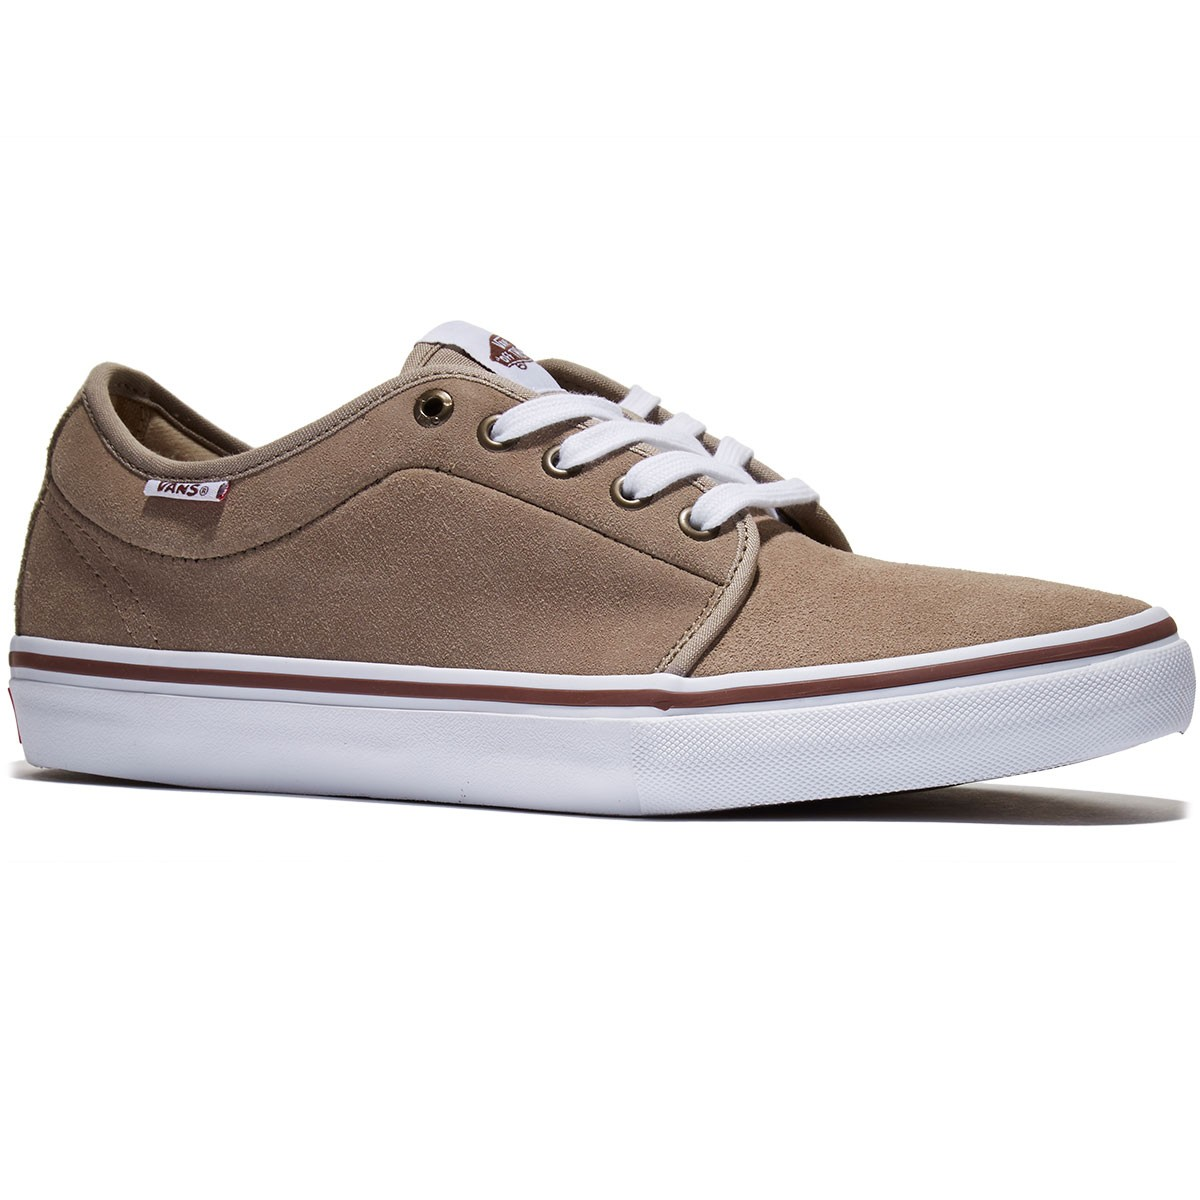 20320a0a4f3e3d Vans Chukka Low Pro Shoes